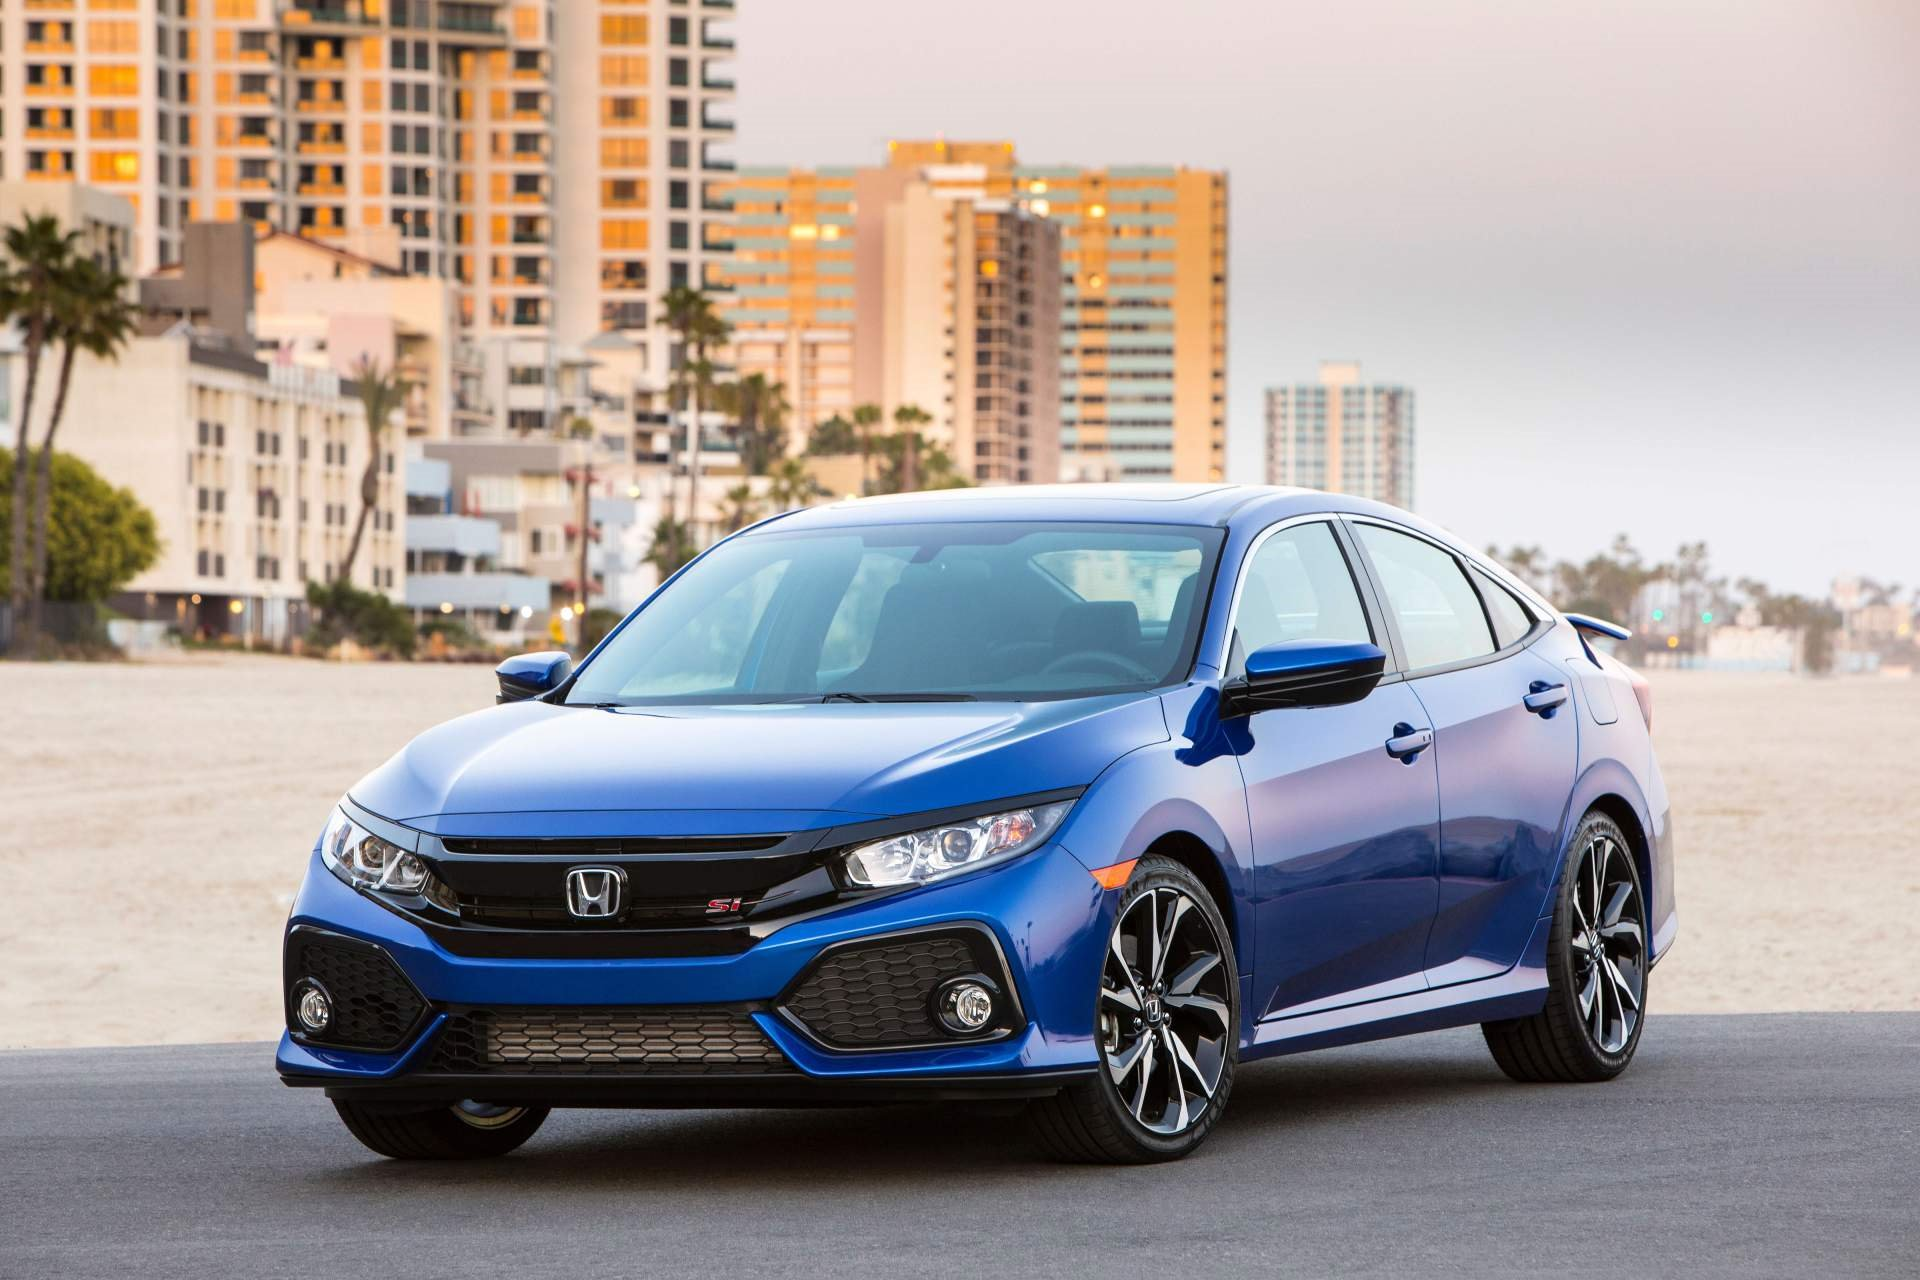 New 2019 Honda Civic EX-L Sedan for sale $24,600 at M and V Leasing in Brooklyn NY 11223 1